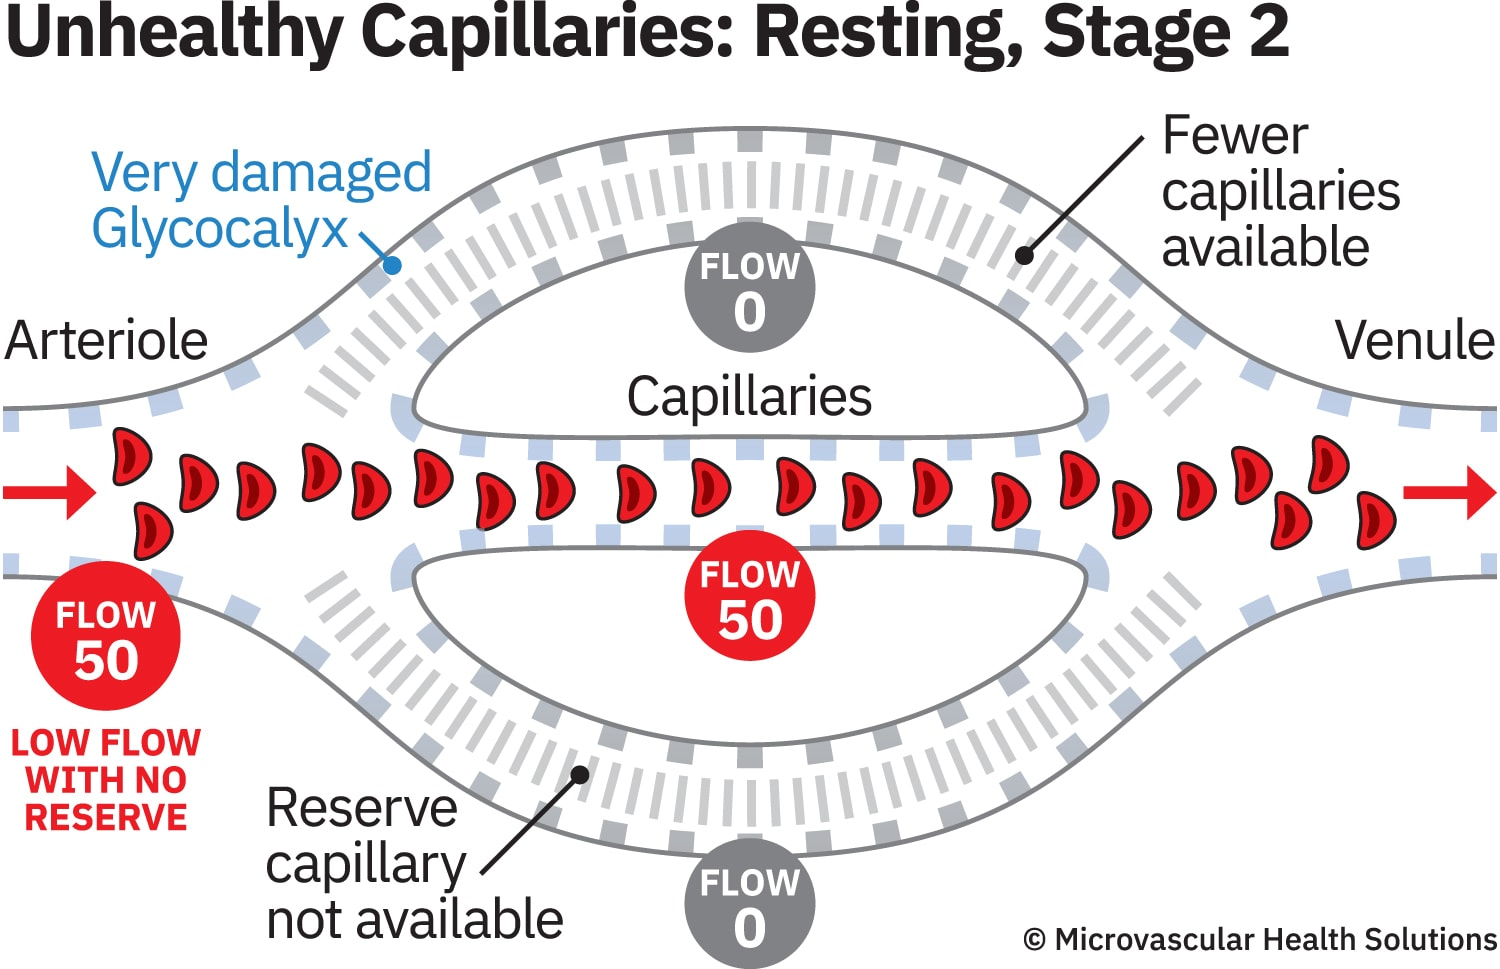 cap-unhealthy-resting-stage2-MHS-1500